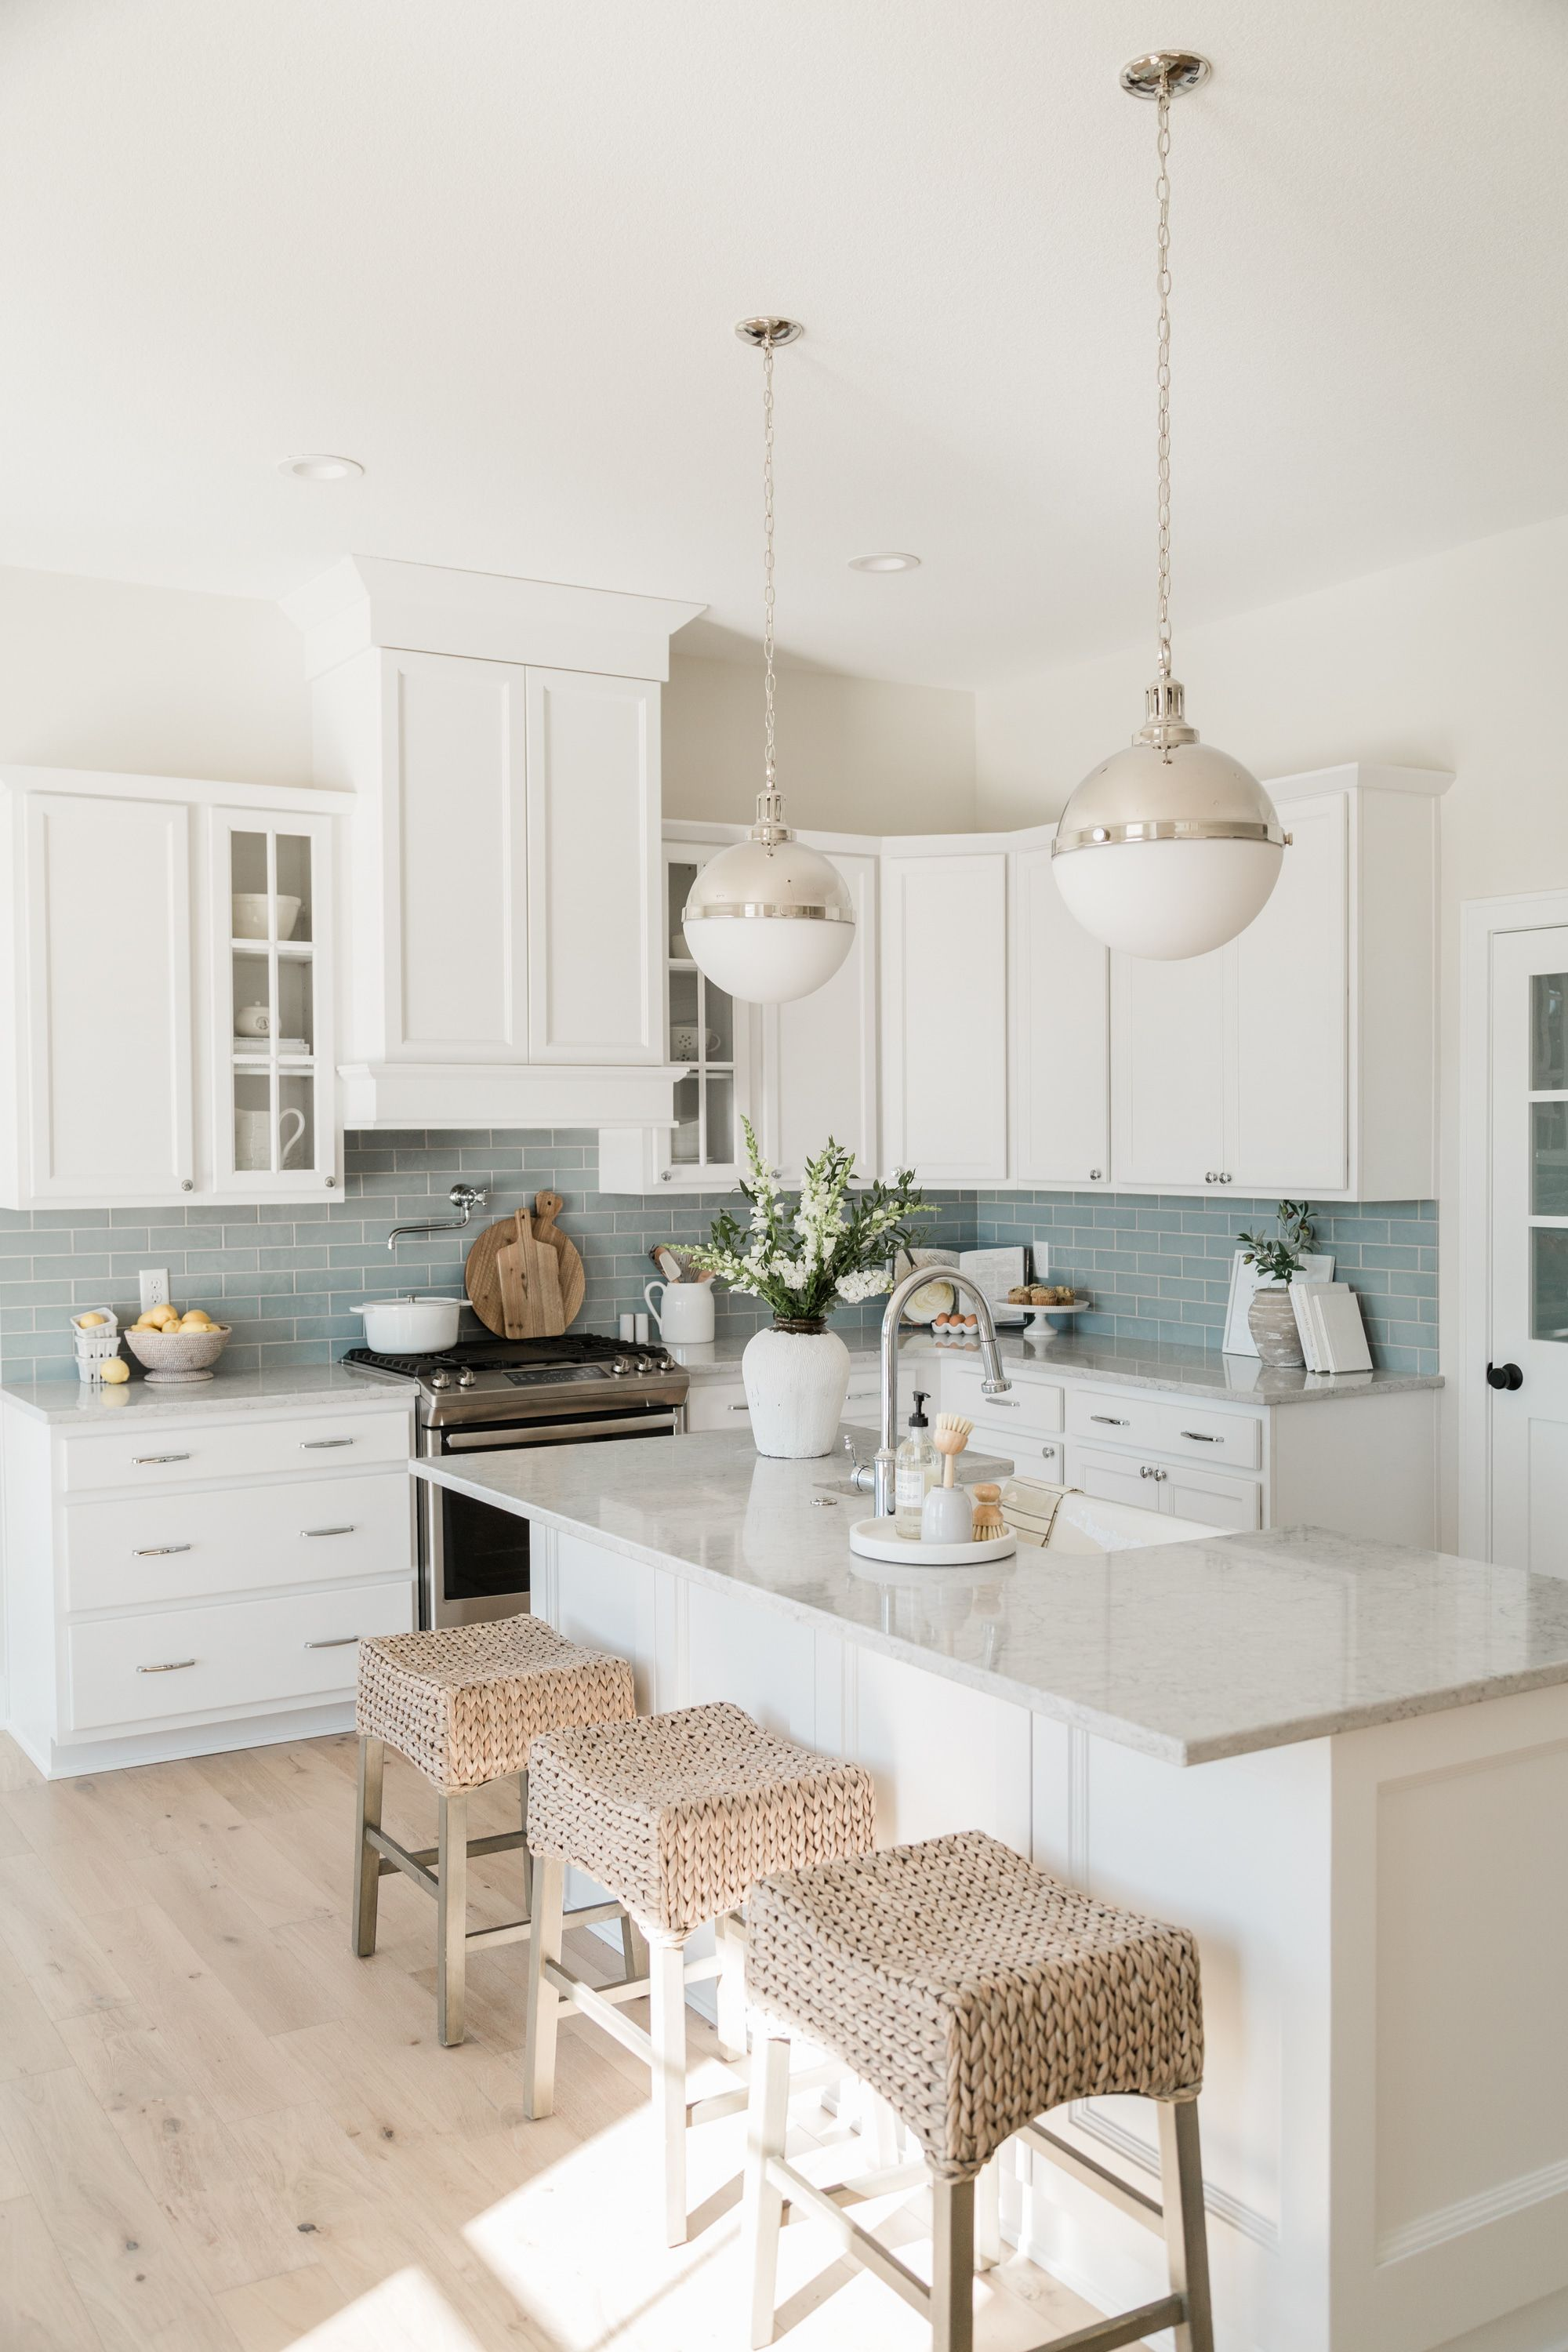 Can I Do This Layout Like The Backsplash Nothing I Dont Like Expect Lights In 2020 Home Kitchens Beach House Kitchens Home Decor Kitchen